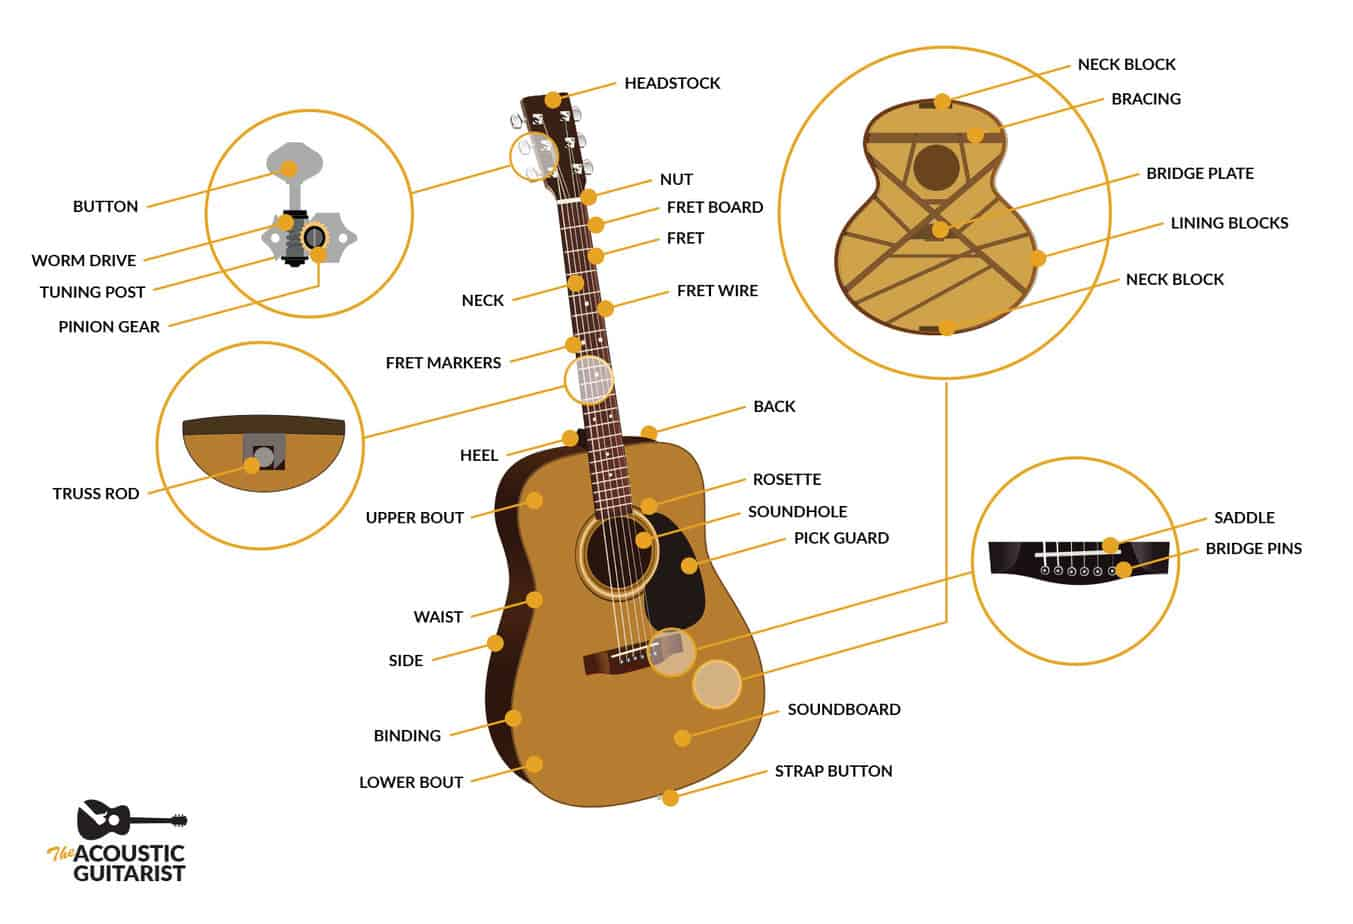 Anatomy Of An Acoustic Guitar  The Complete Guide